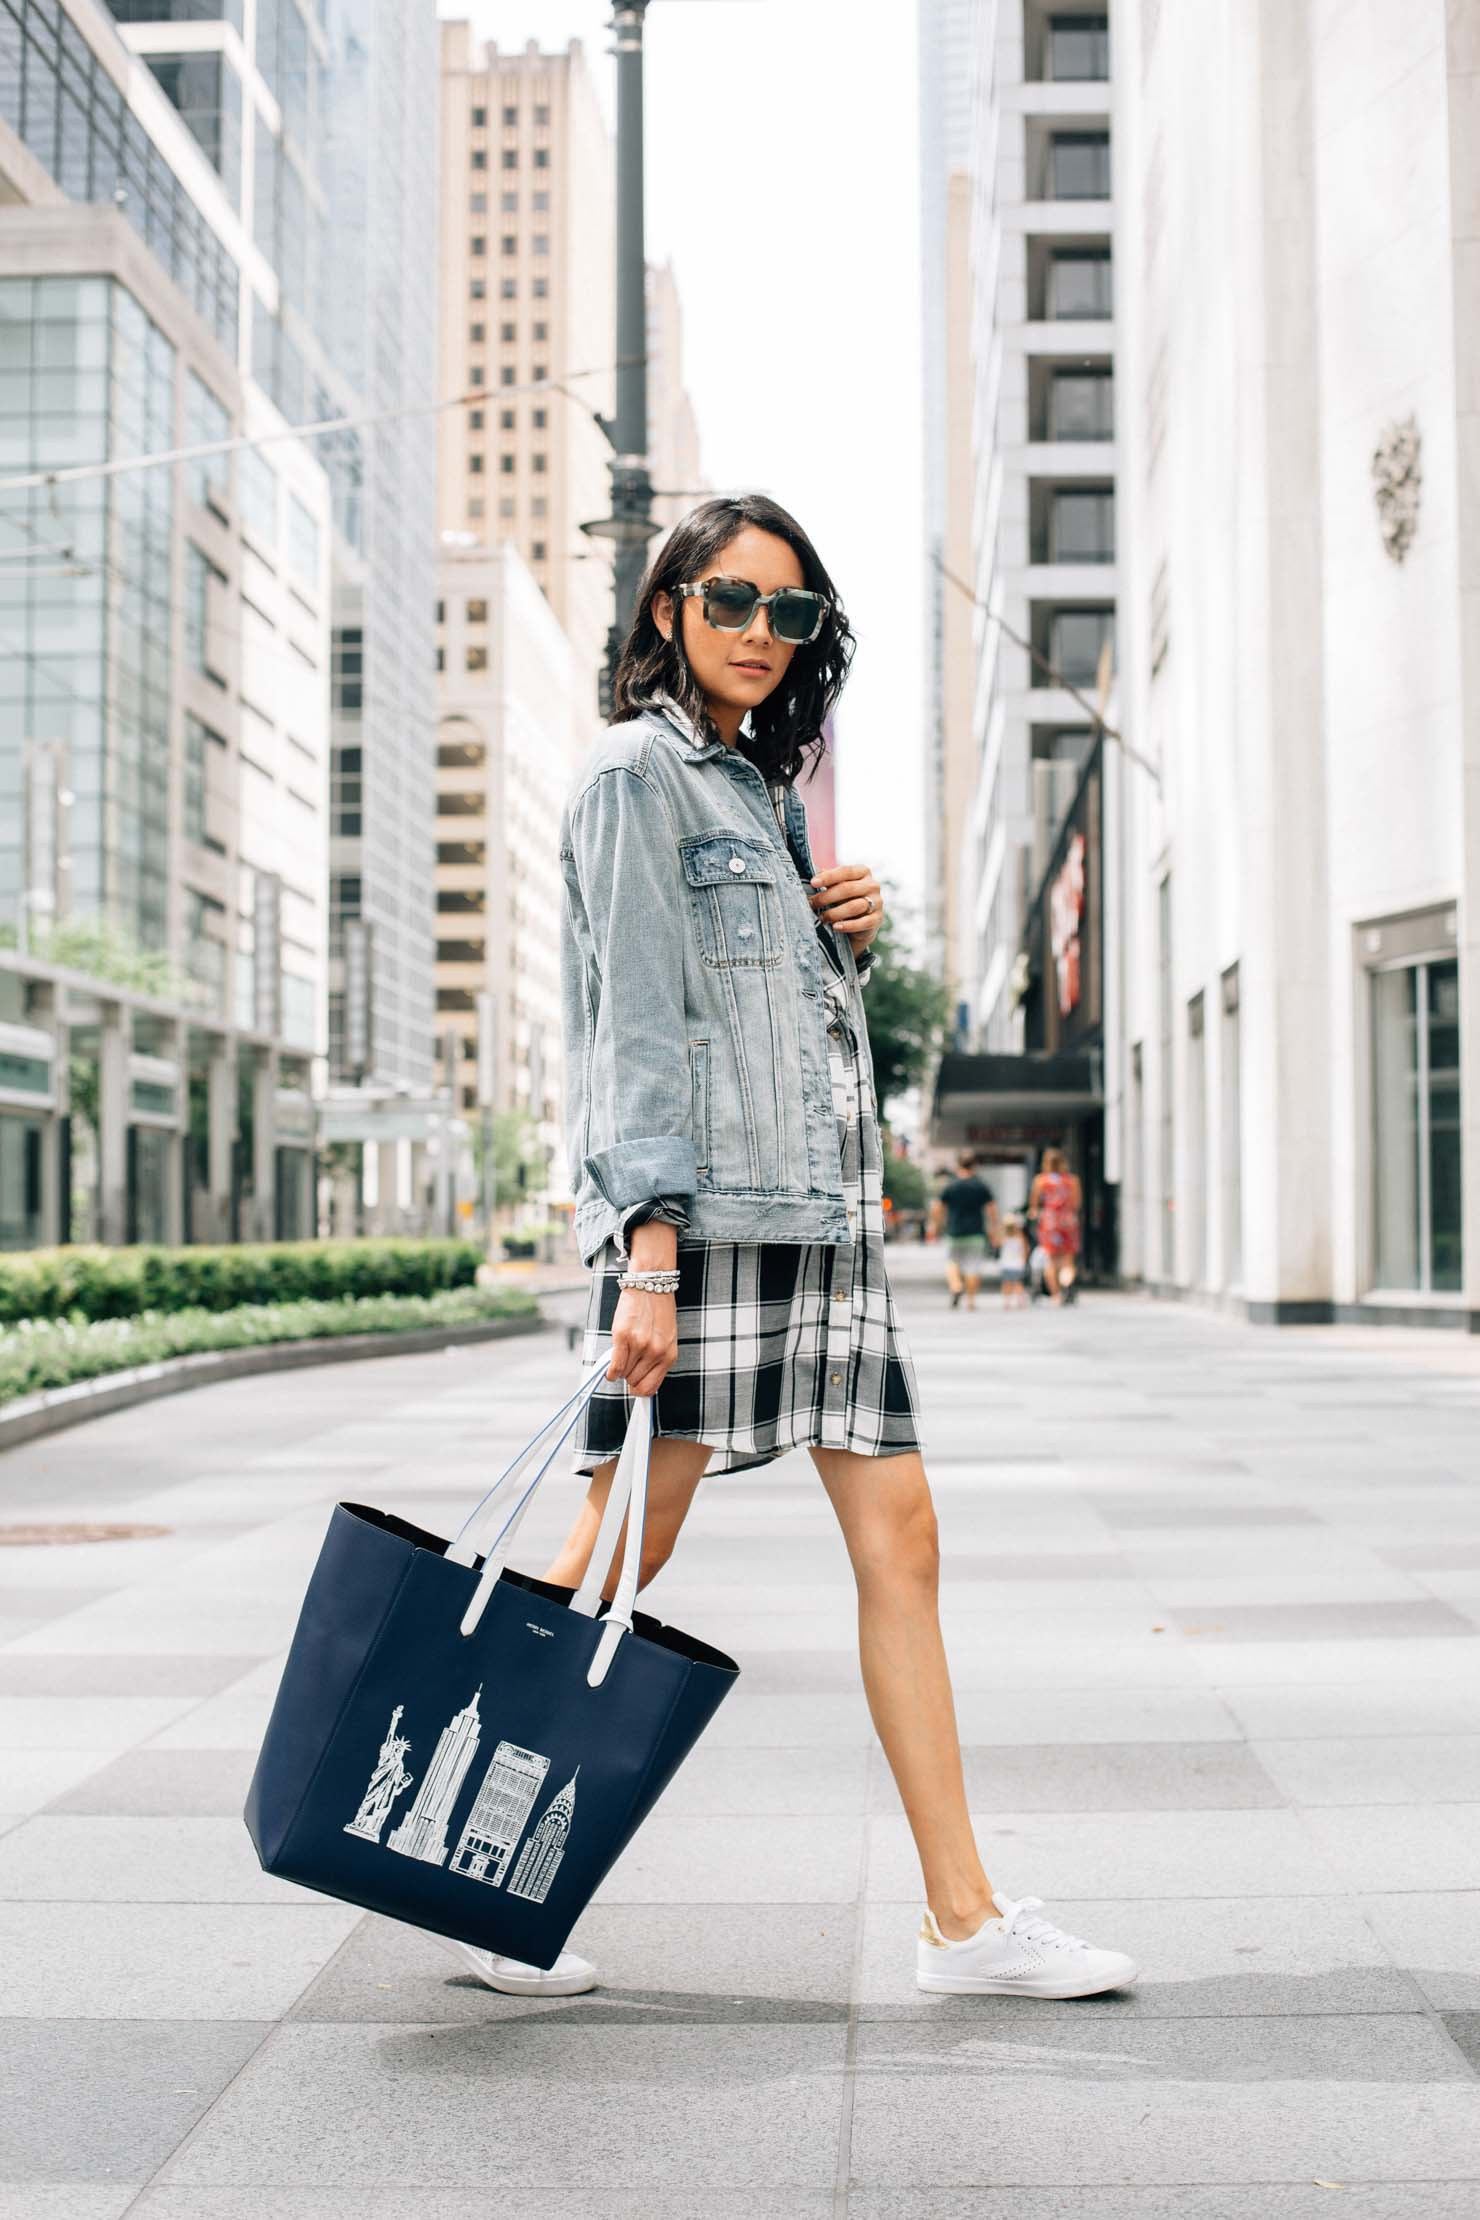 Street style chic in an Abercrombie plaid dress and oversized denim jacket